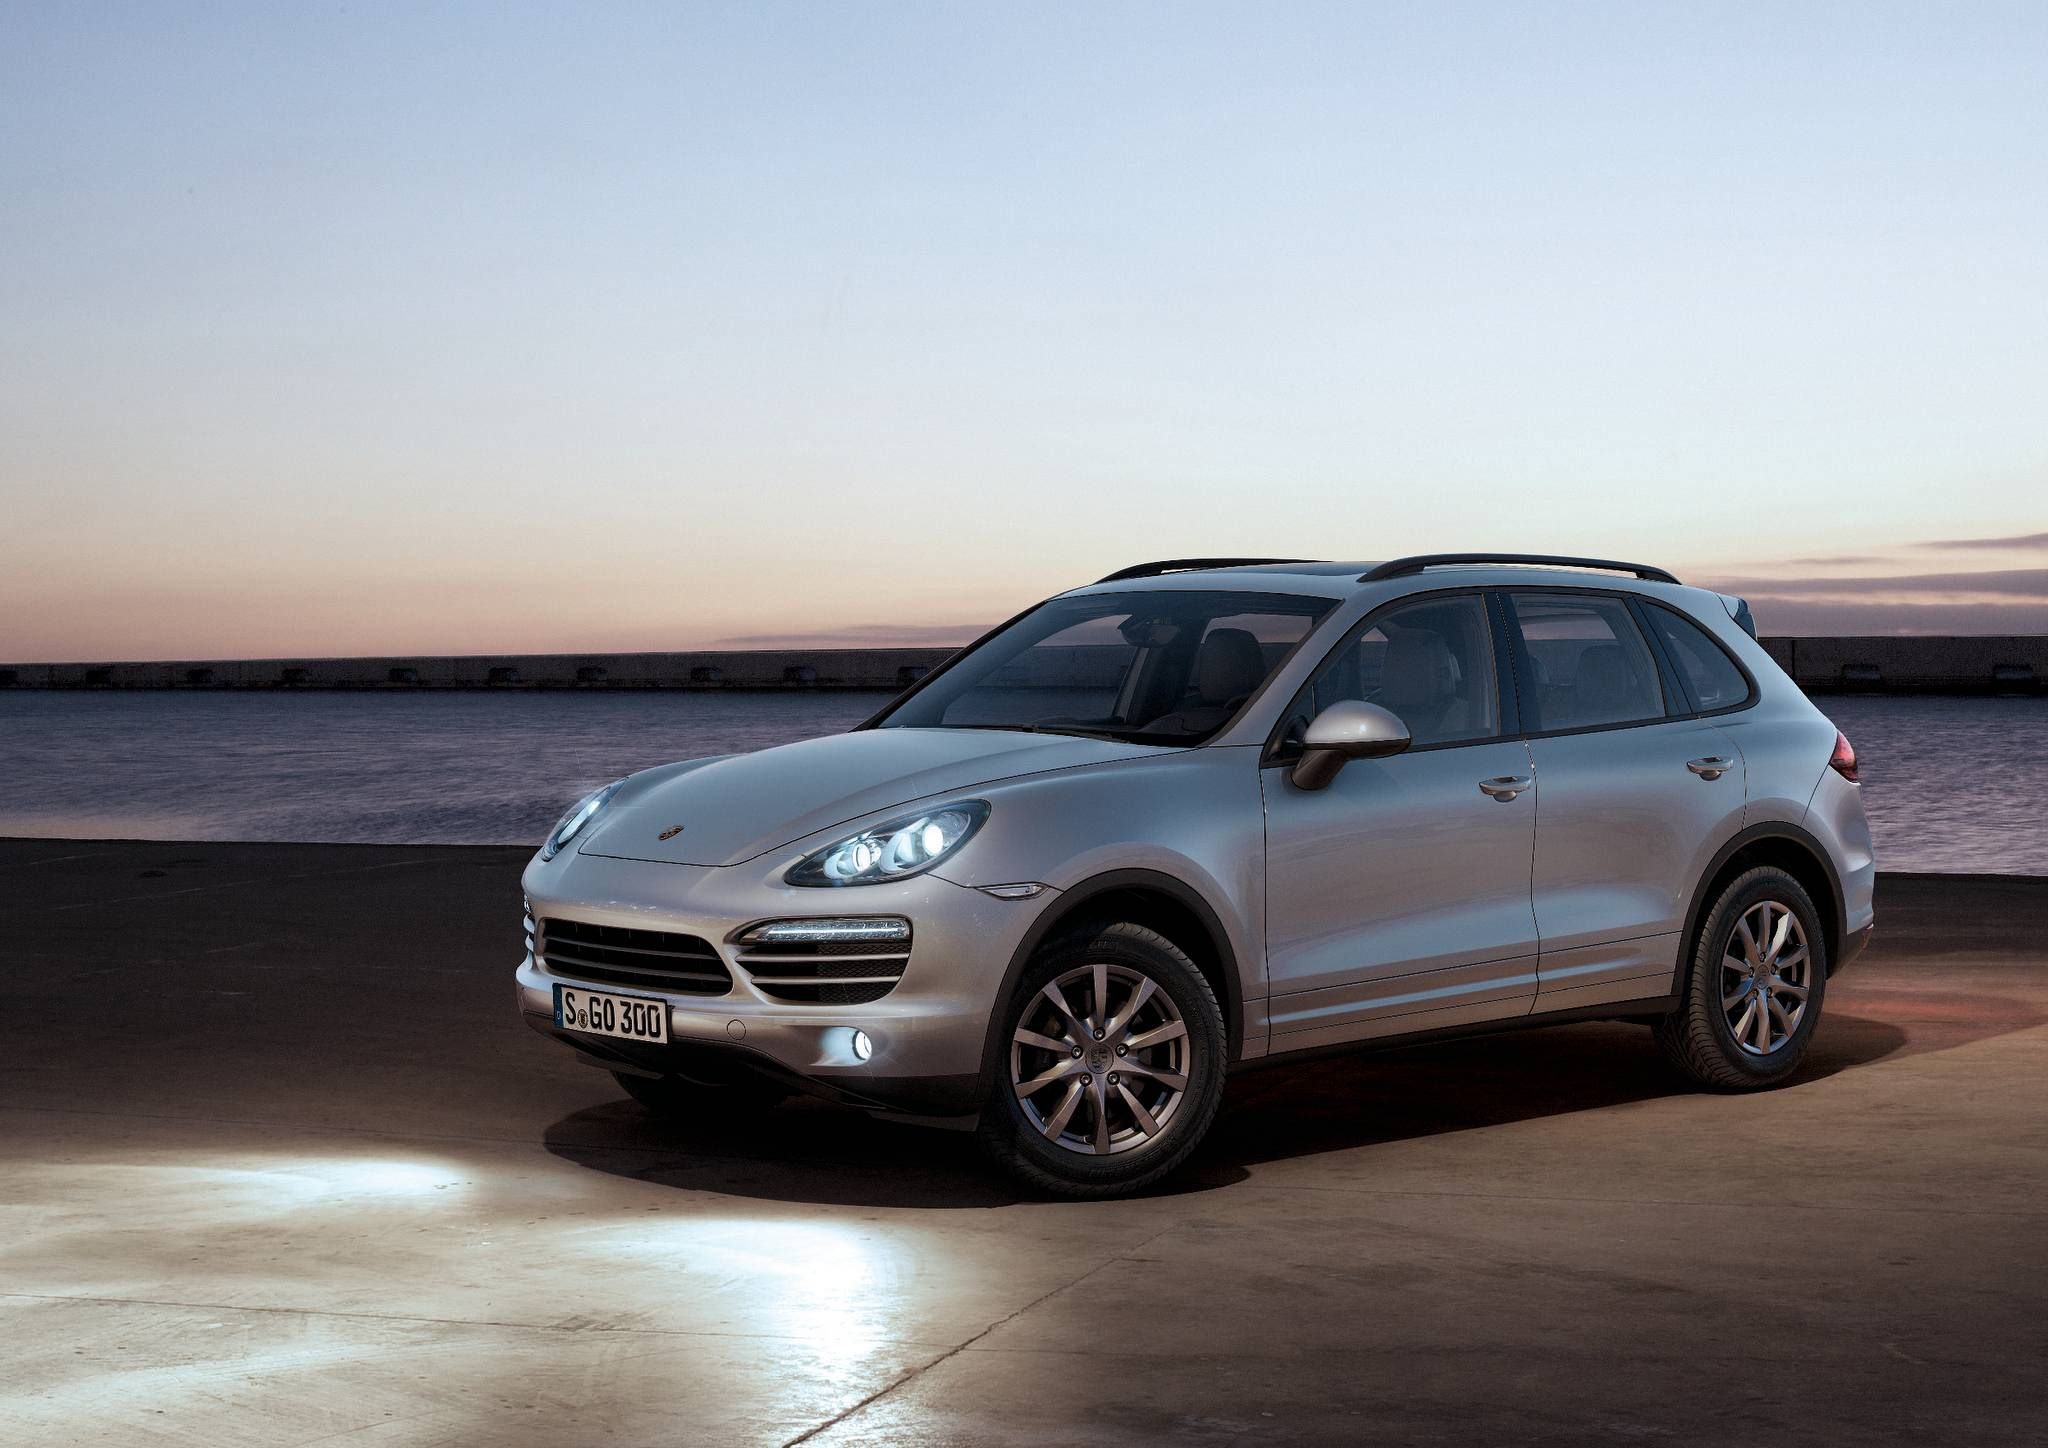 Ing Used Is The Porsche Cayenne Practical As A Re Vehicle Globe And Mail